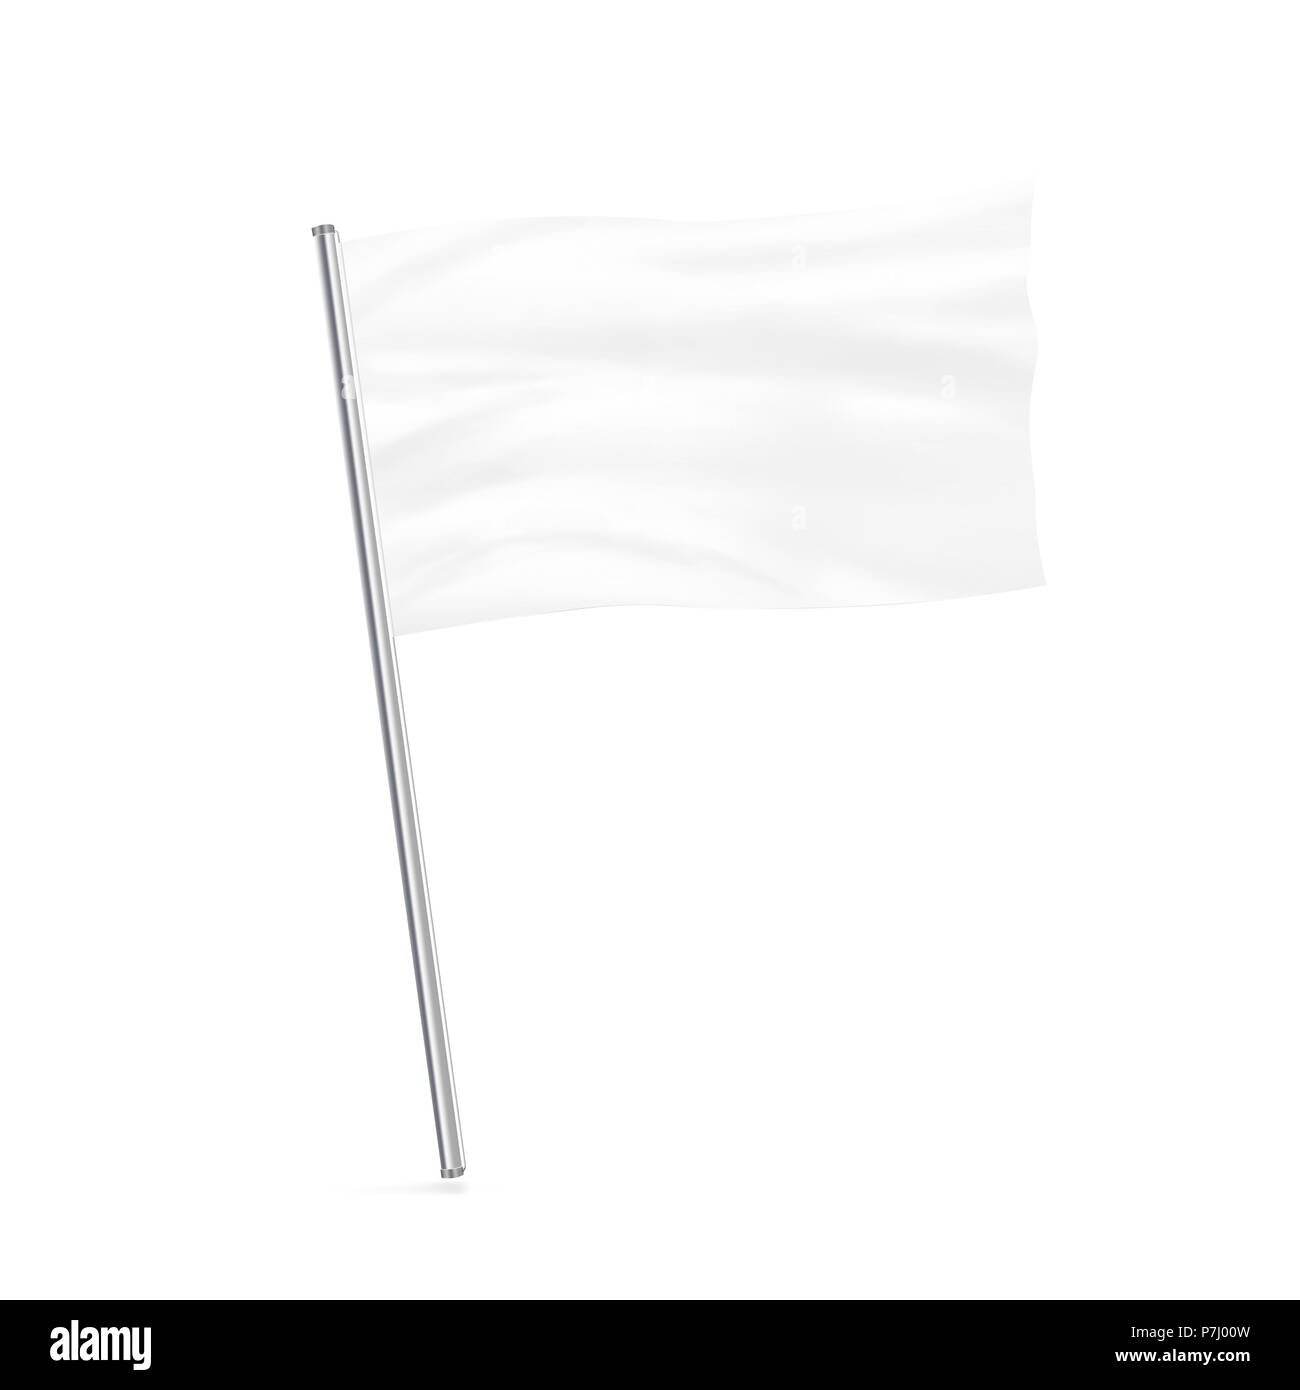 Blank white flag mock up stand at white background isolated. Large wavy flagpole mockup ready for business logo design presentation. Surrender symbol empty banner. Clear standart sign. - Stock Image